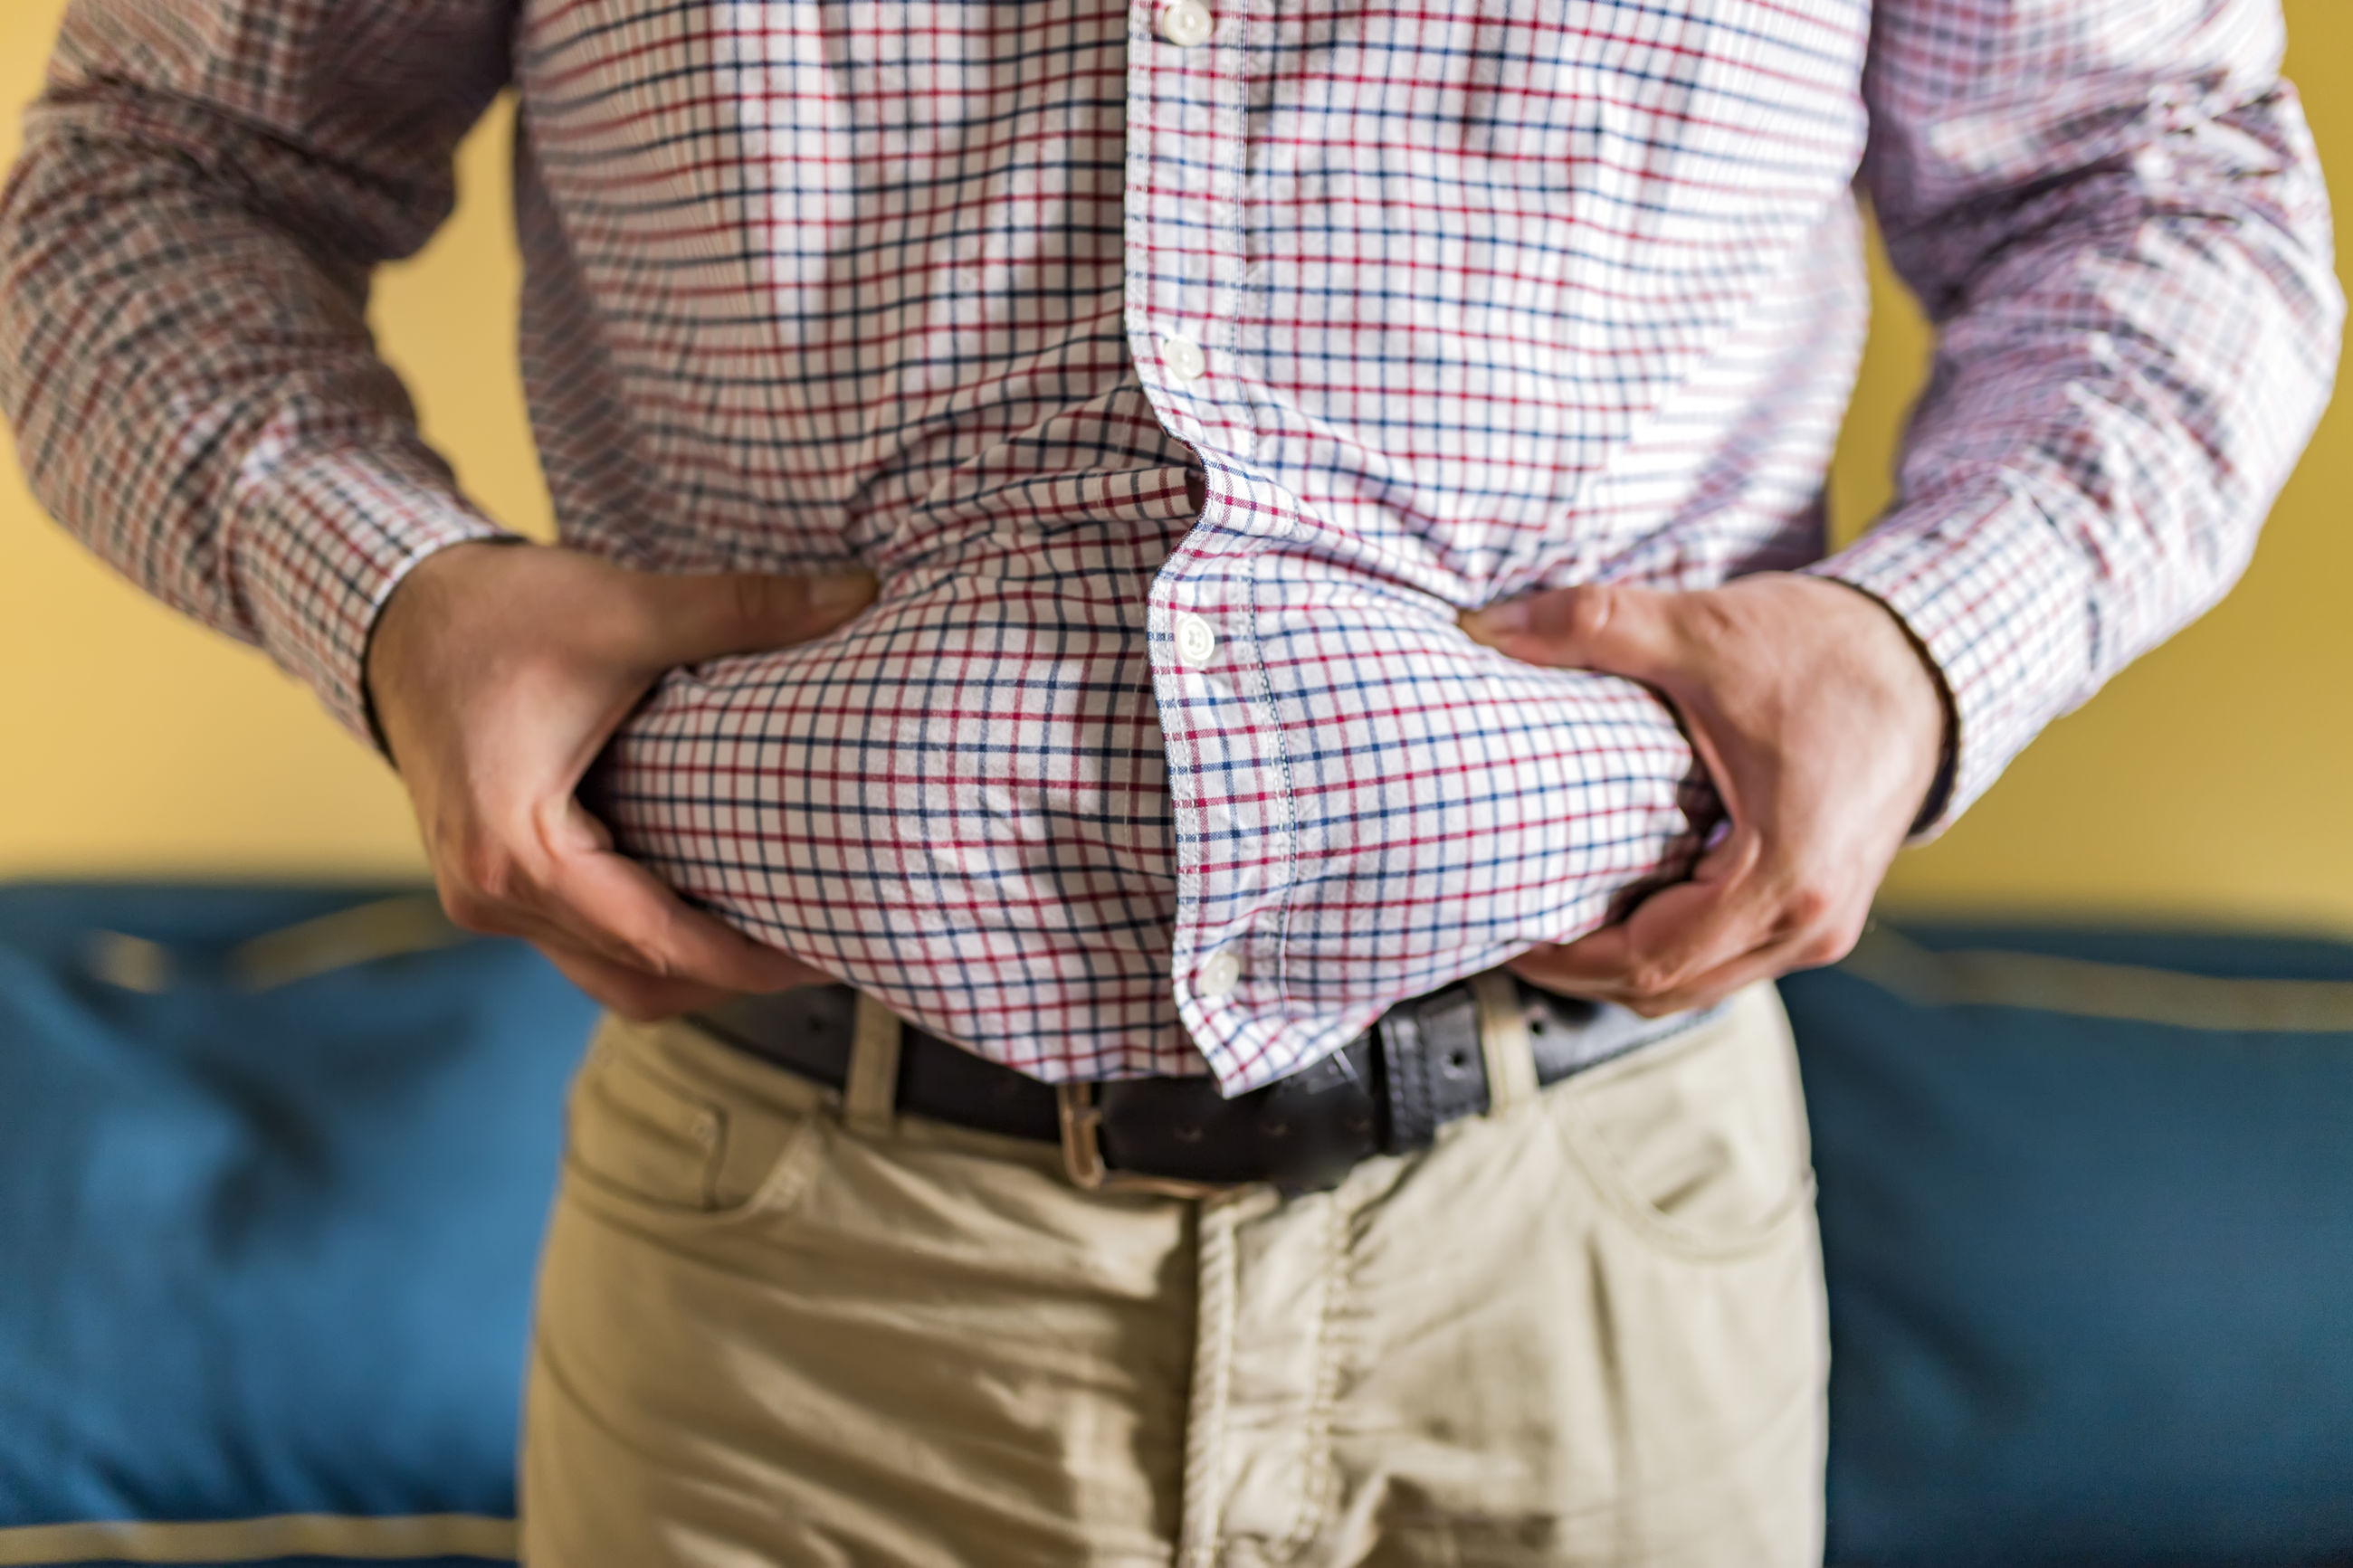 Midsection of man holding belly fat at home